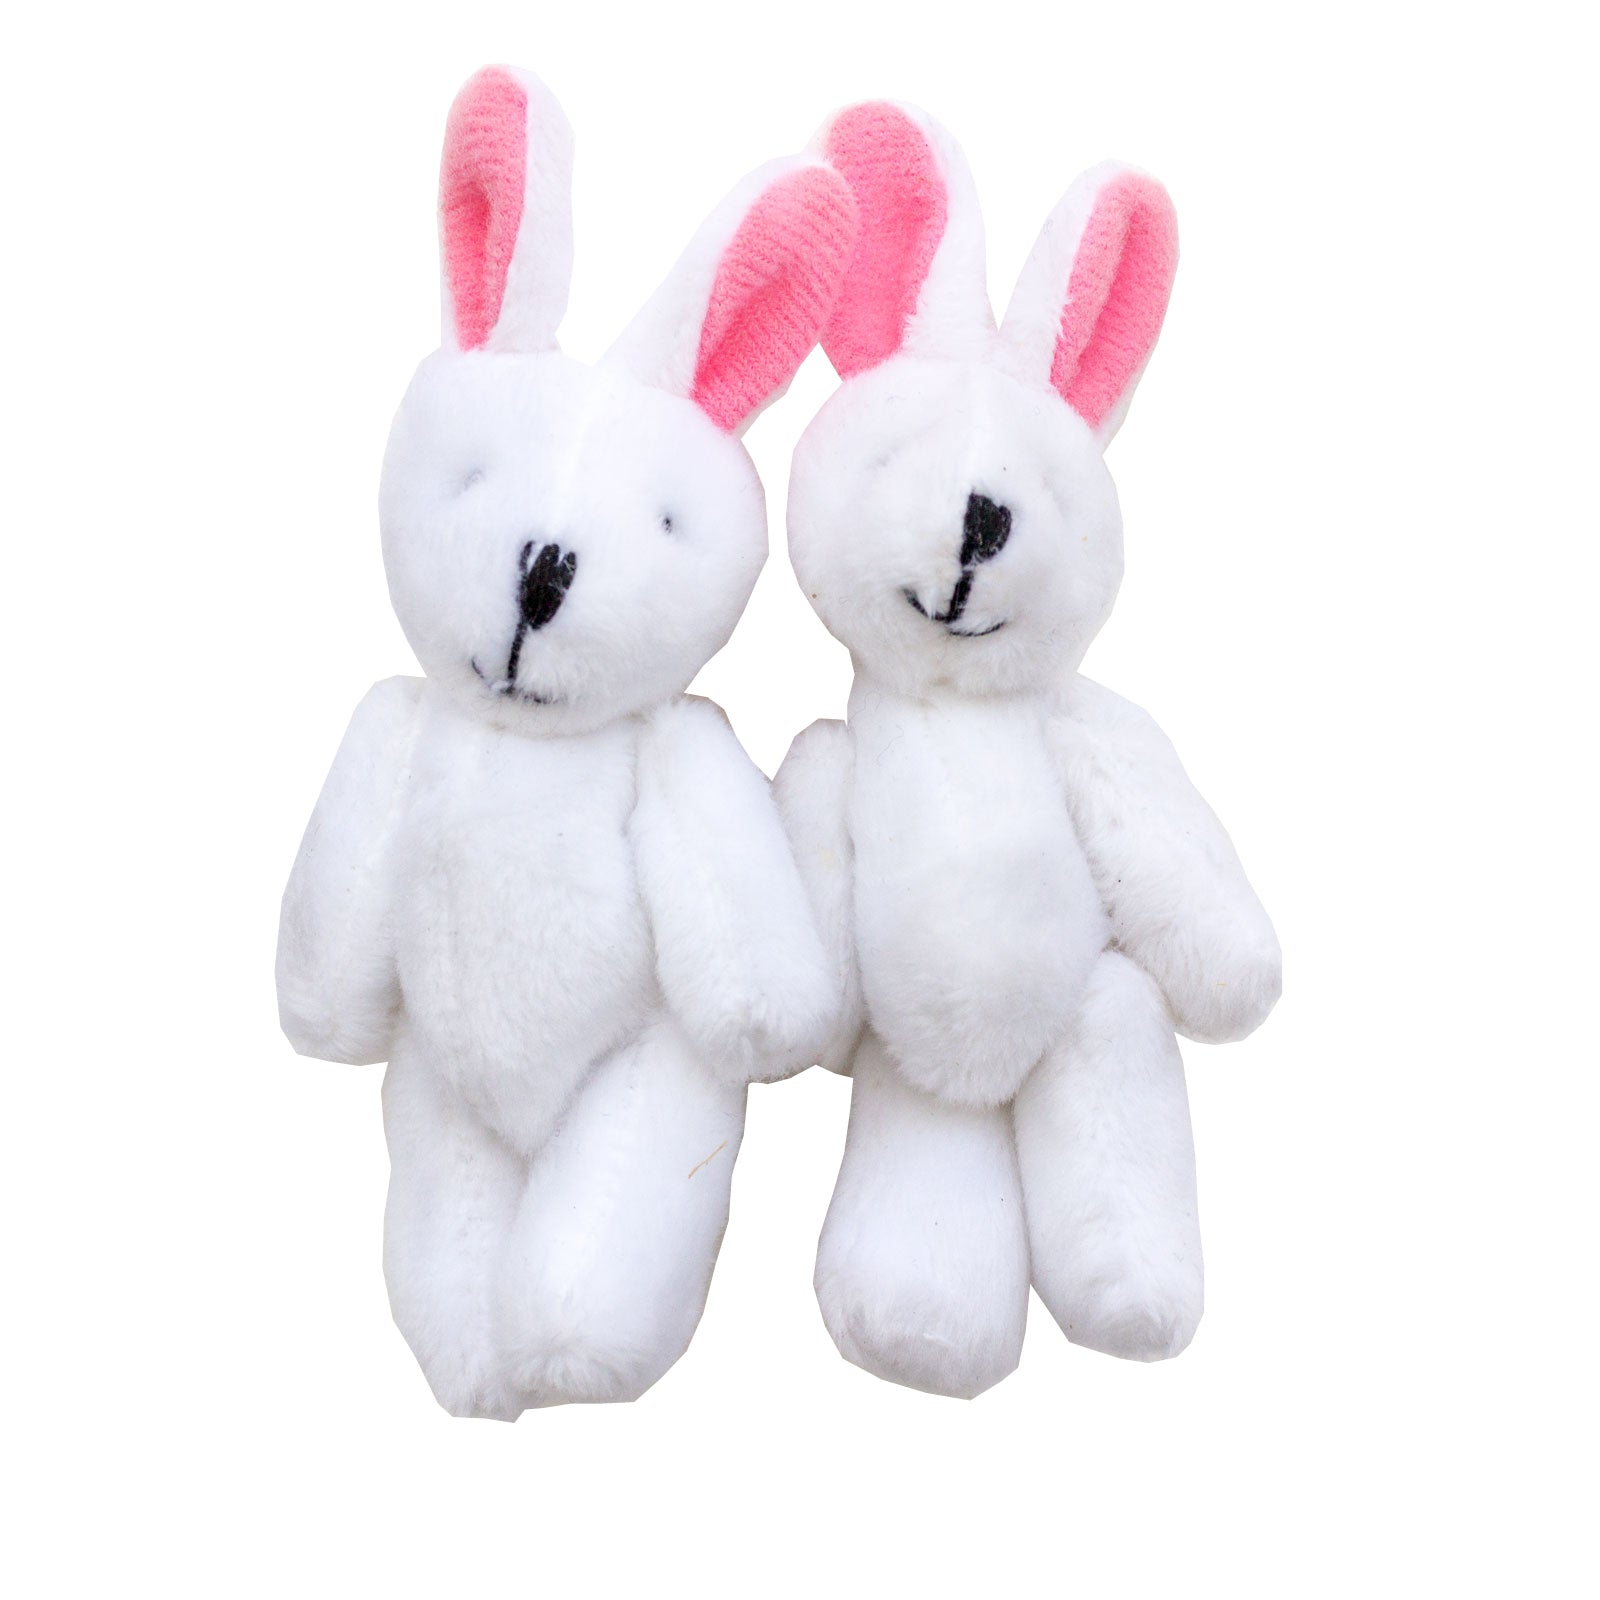 Small Rabbits X 45 - Cute Soft Adorable